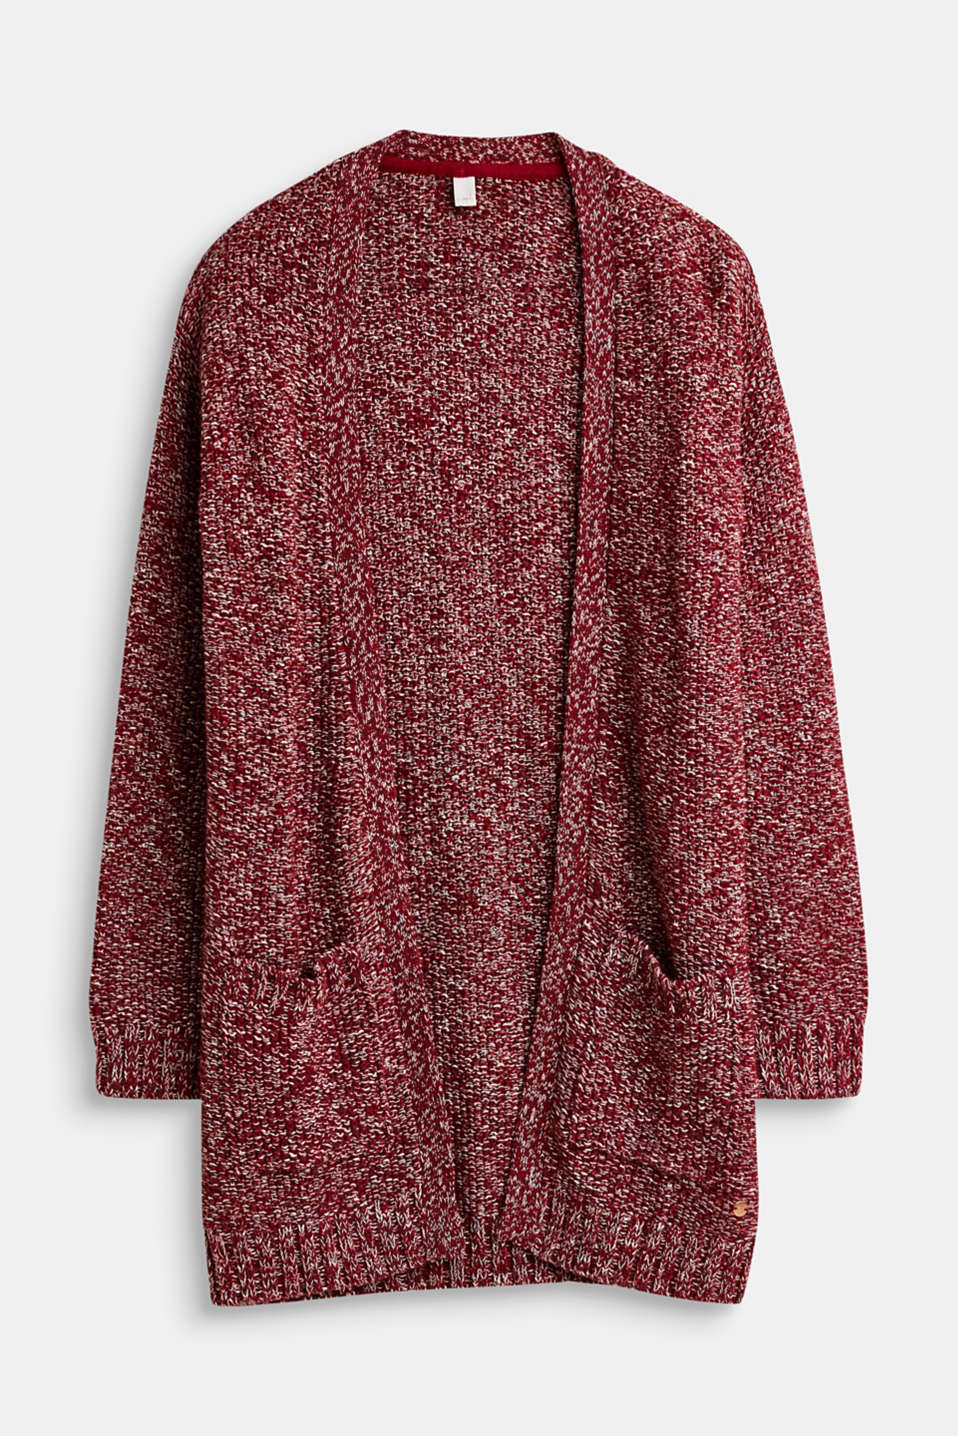 Esprit - Melange textured cardigan, 100% cotton